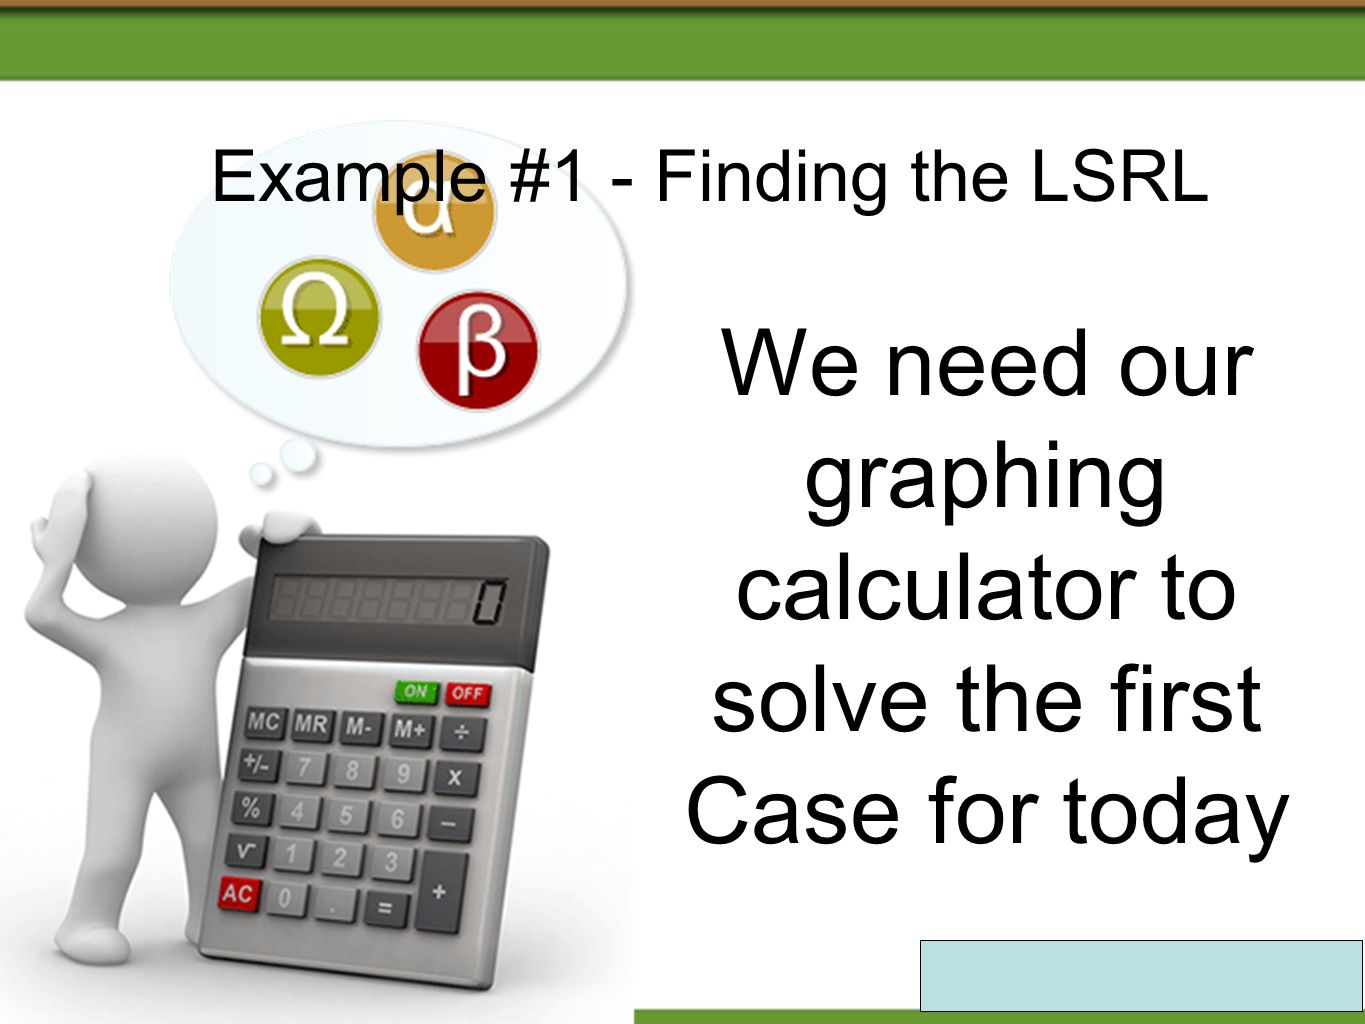 Example #1 - Finding the LSRL